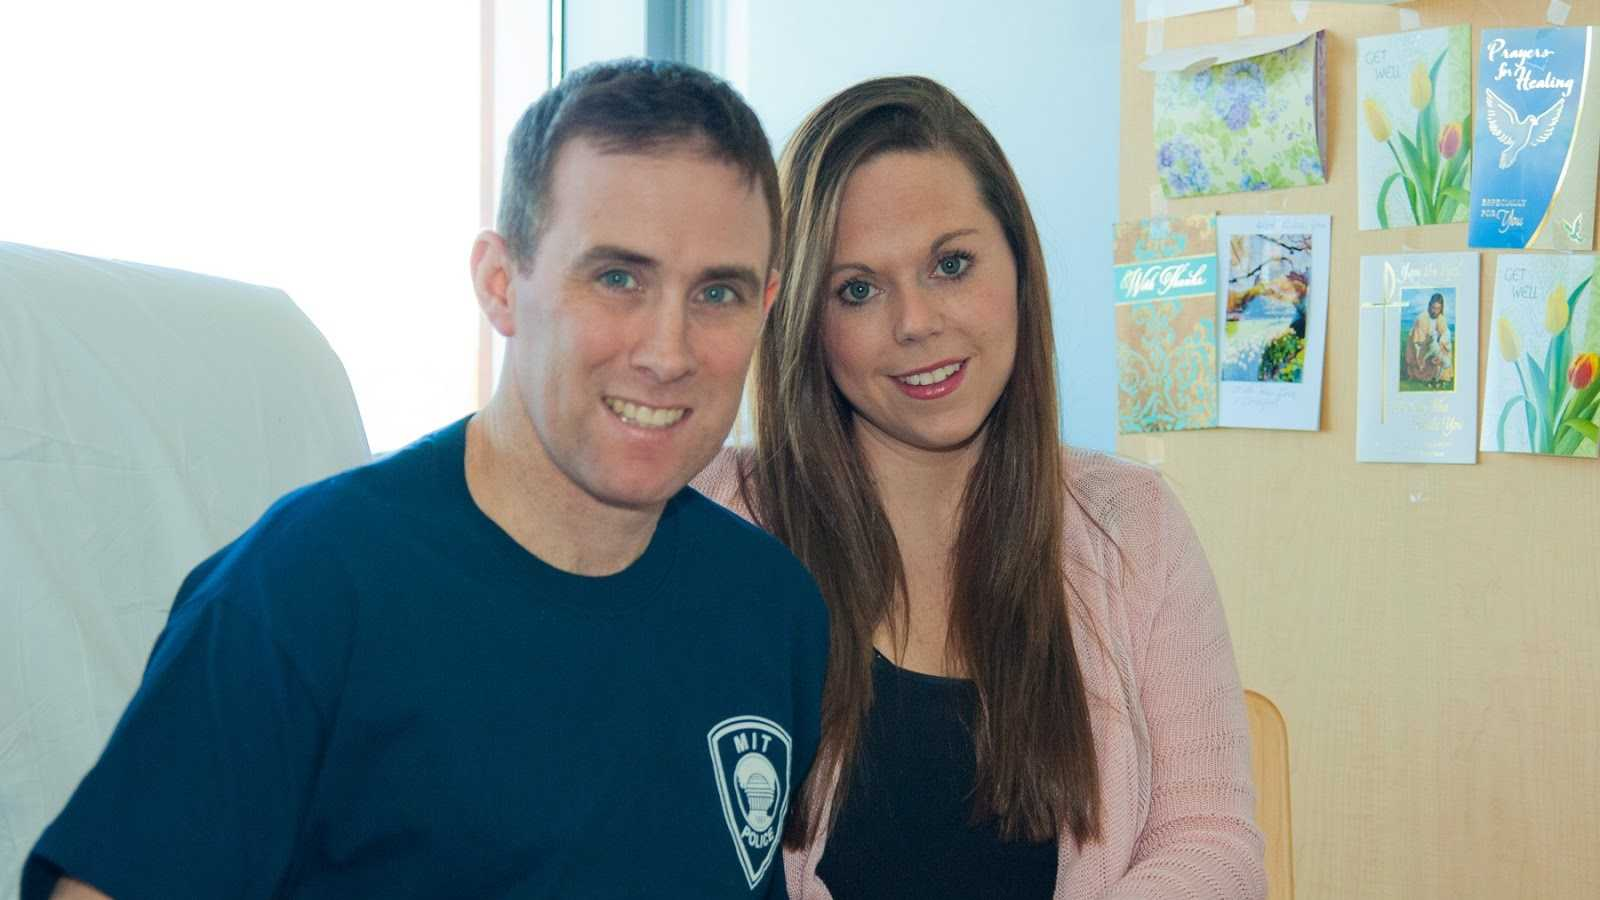 Officer Donohue & his wife Kim